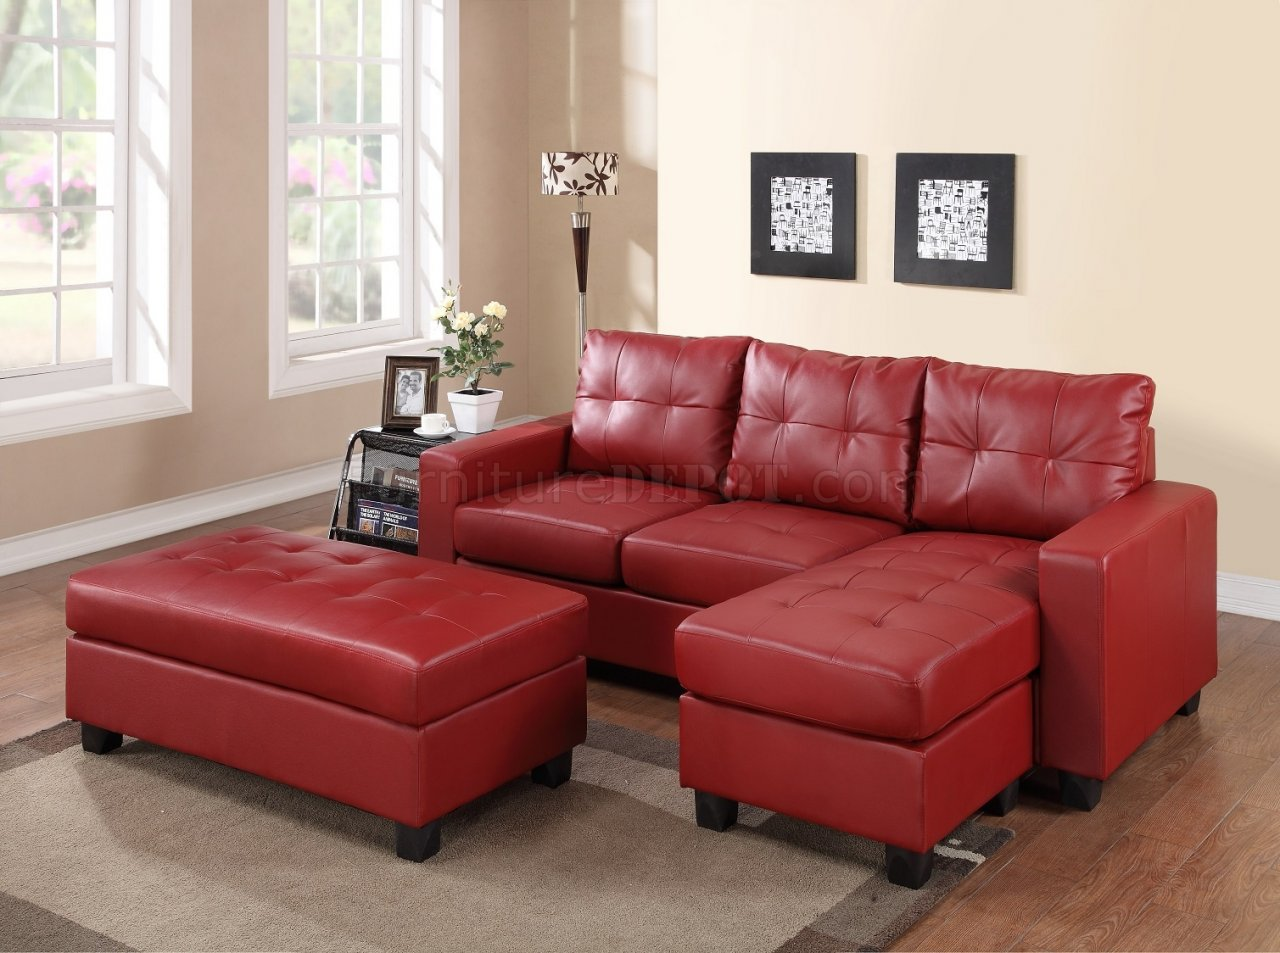 sofa designs in red colour mission sleeper 2511 sectional set bonded leather match pu